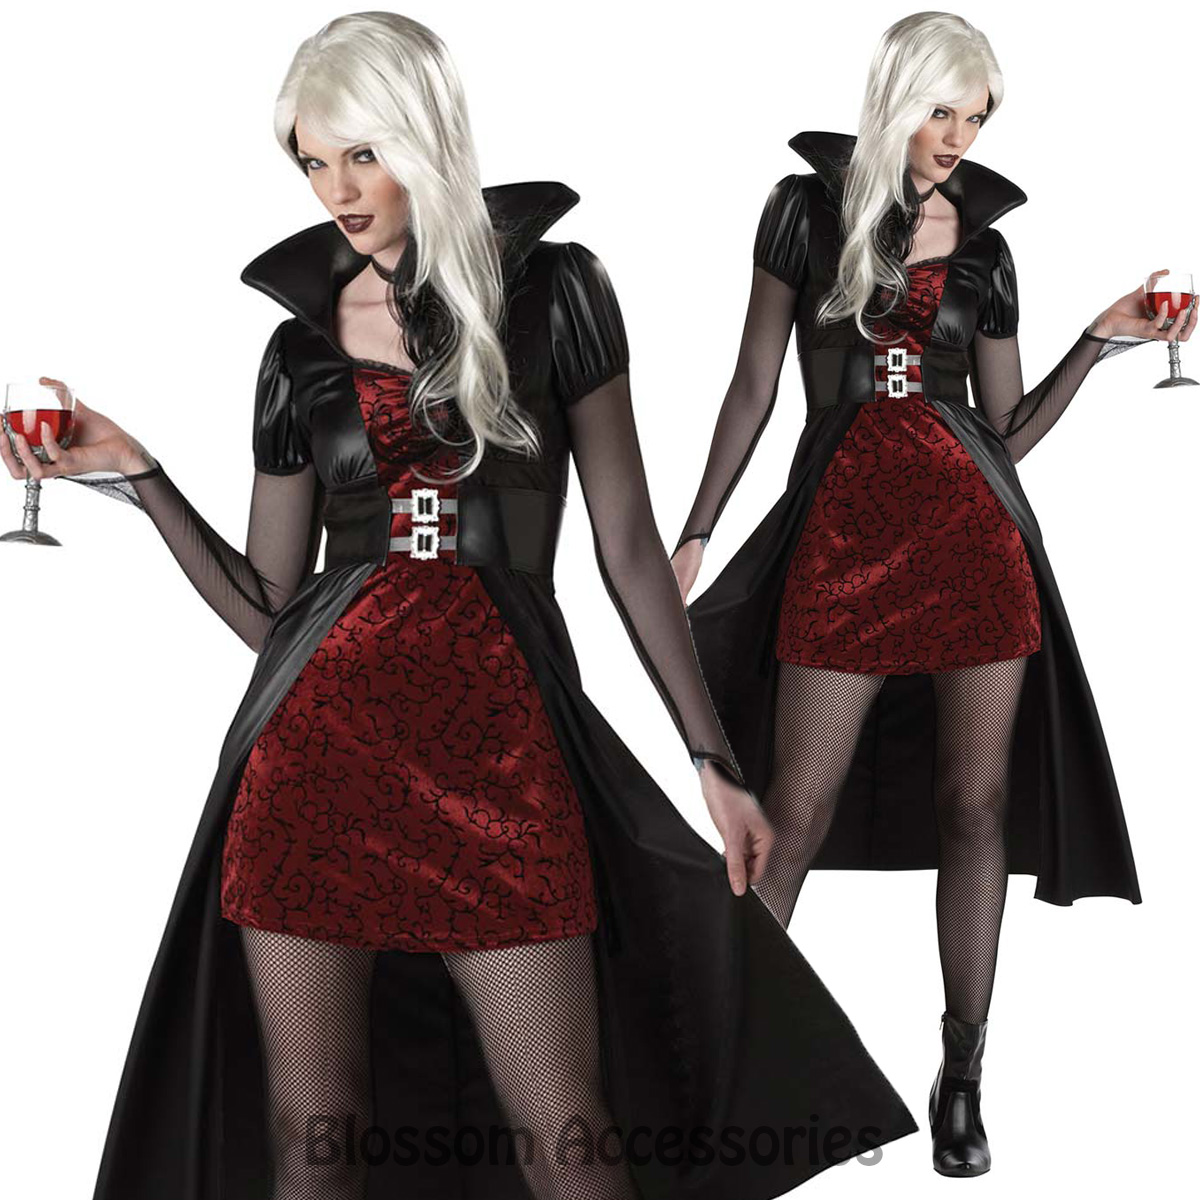 Image Is Loading C792 Blood Thirsty Beauty Woman Vampire Gothic Halloween